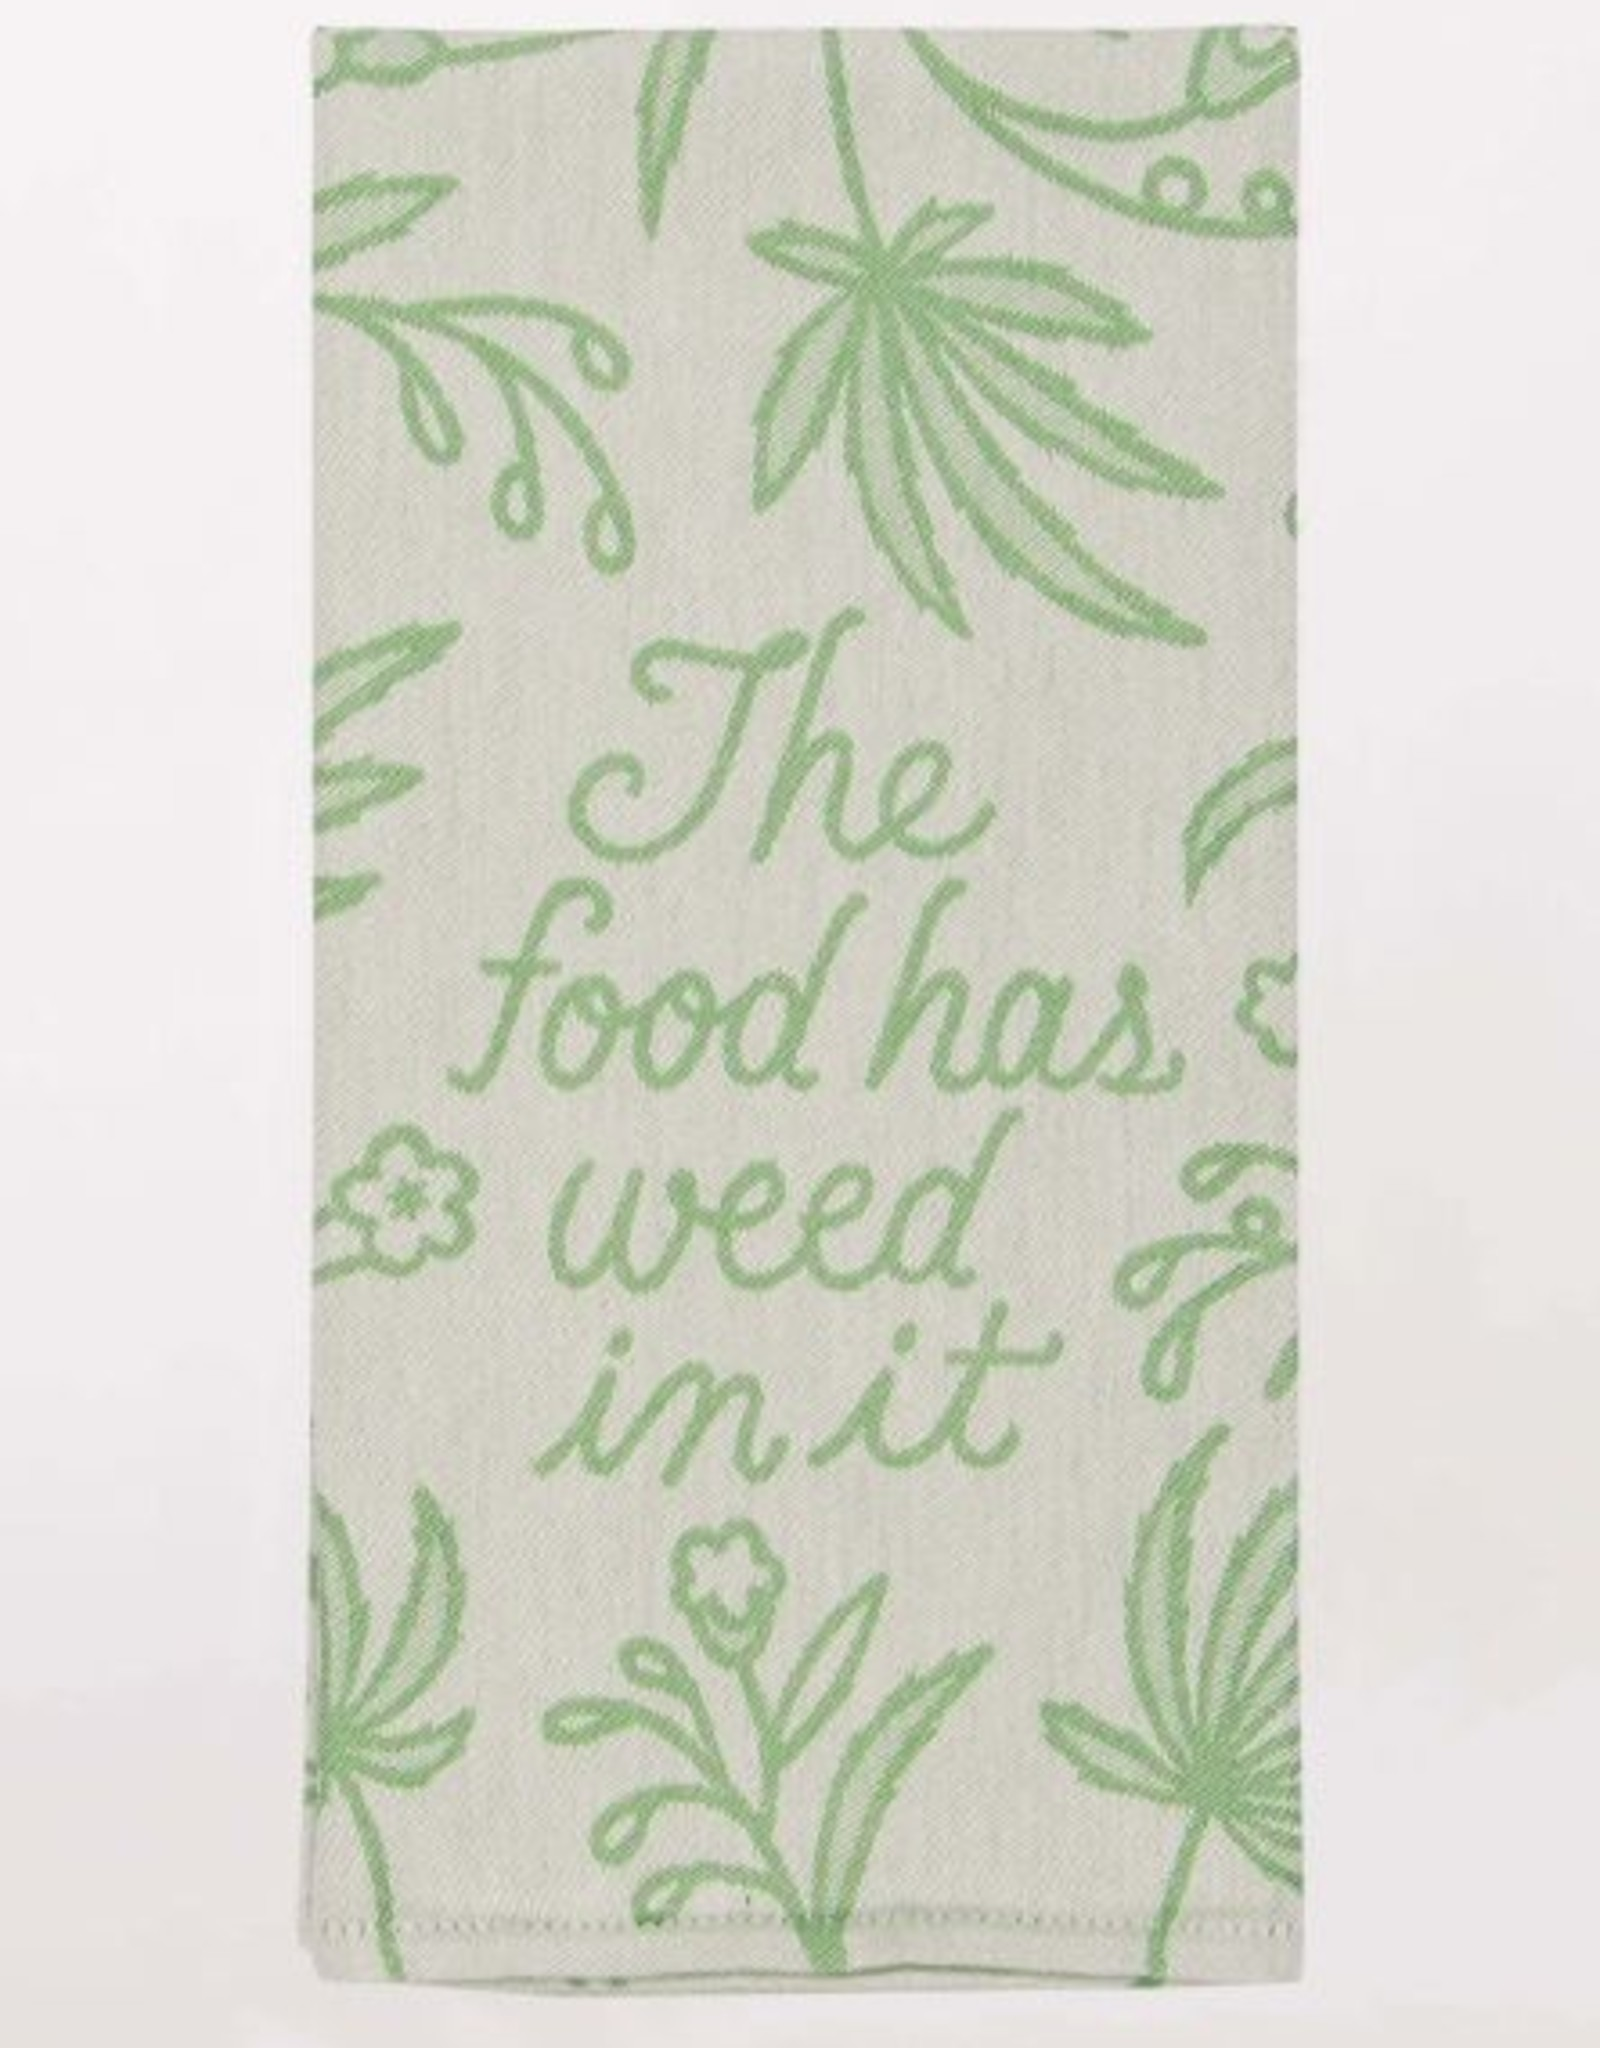 Blue Q Food Has Weed Dish Towel